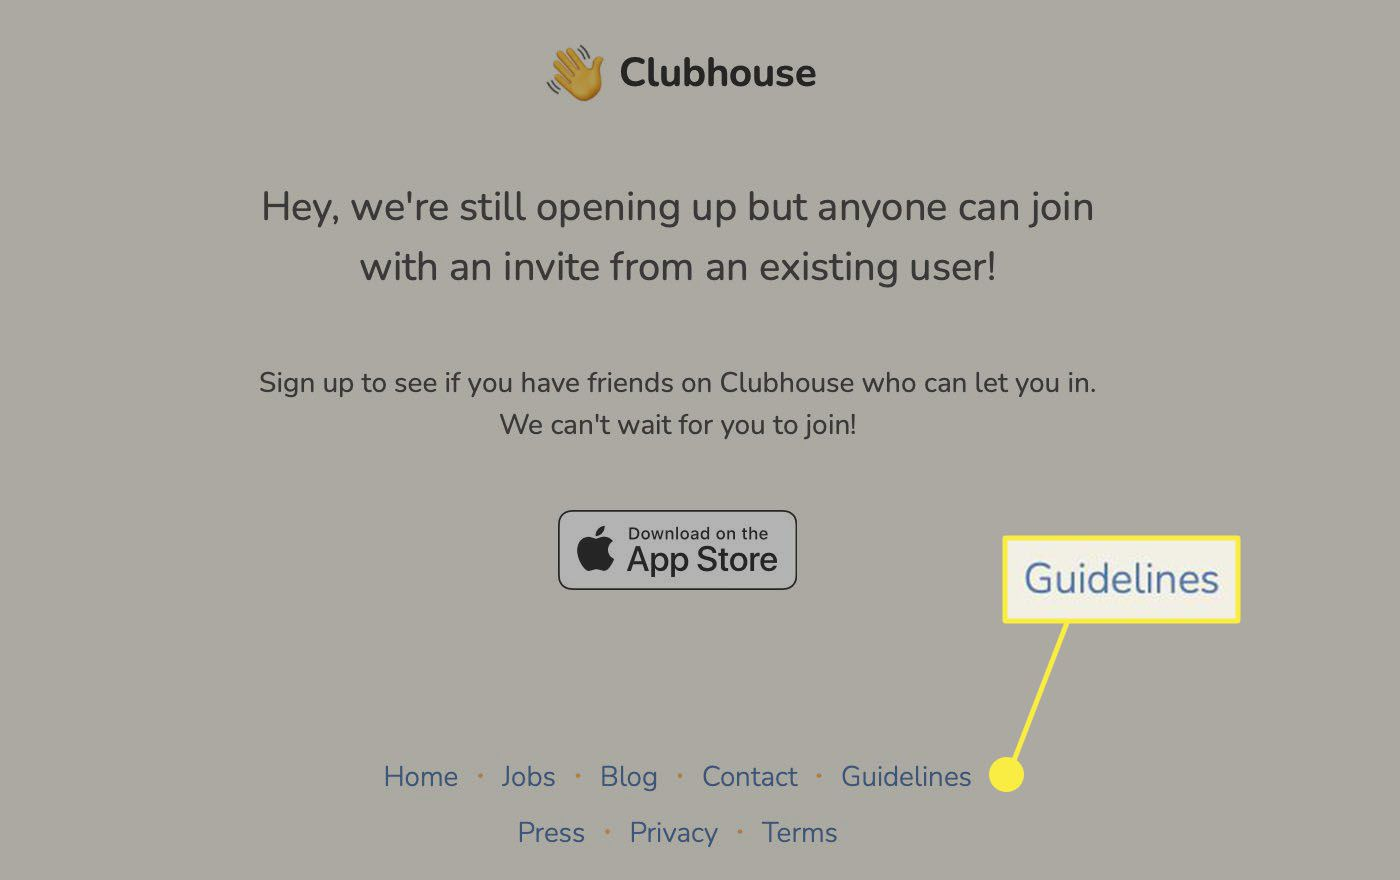 Guidelines at the bottom of the Clubhouse site.